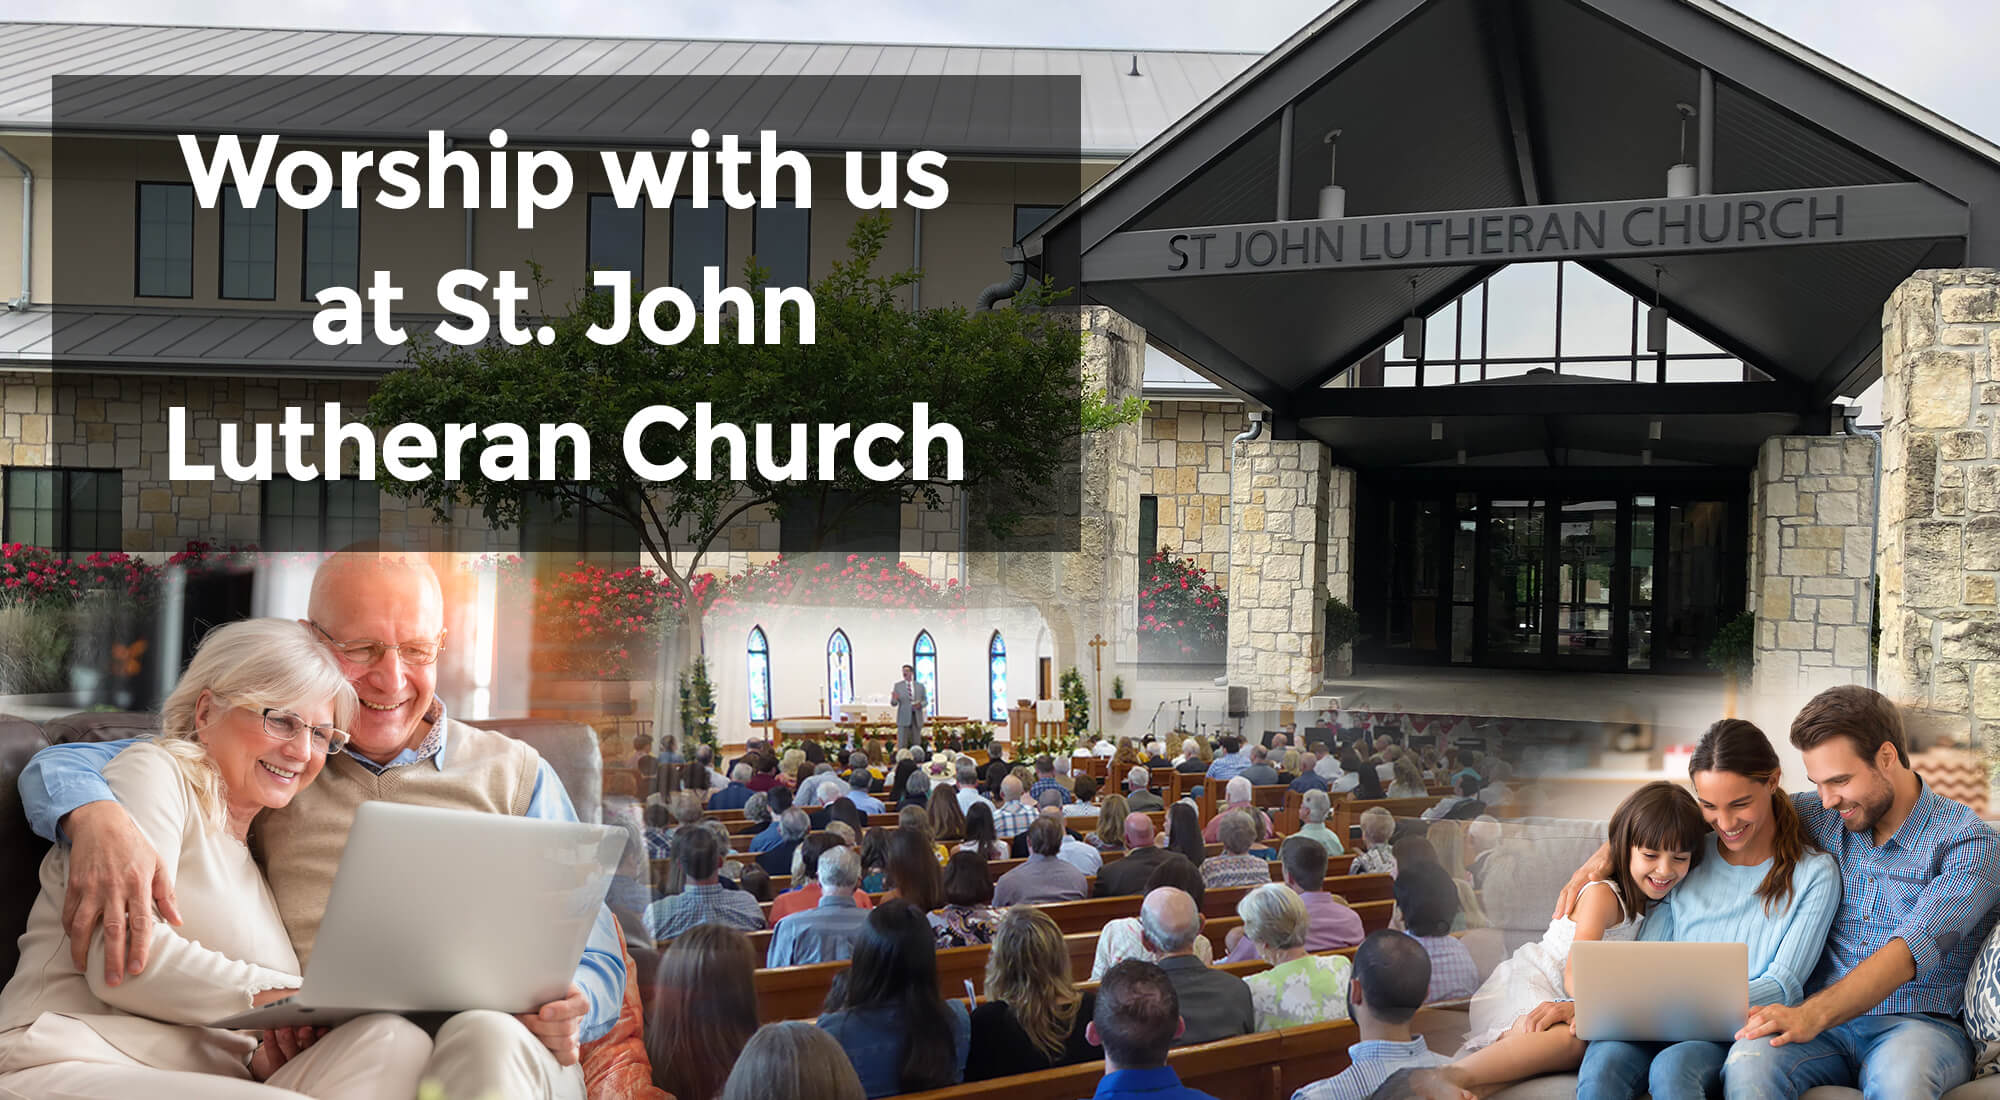 Worship with us at St. John Lutheran Church!